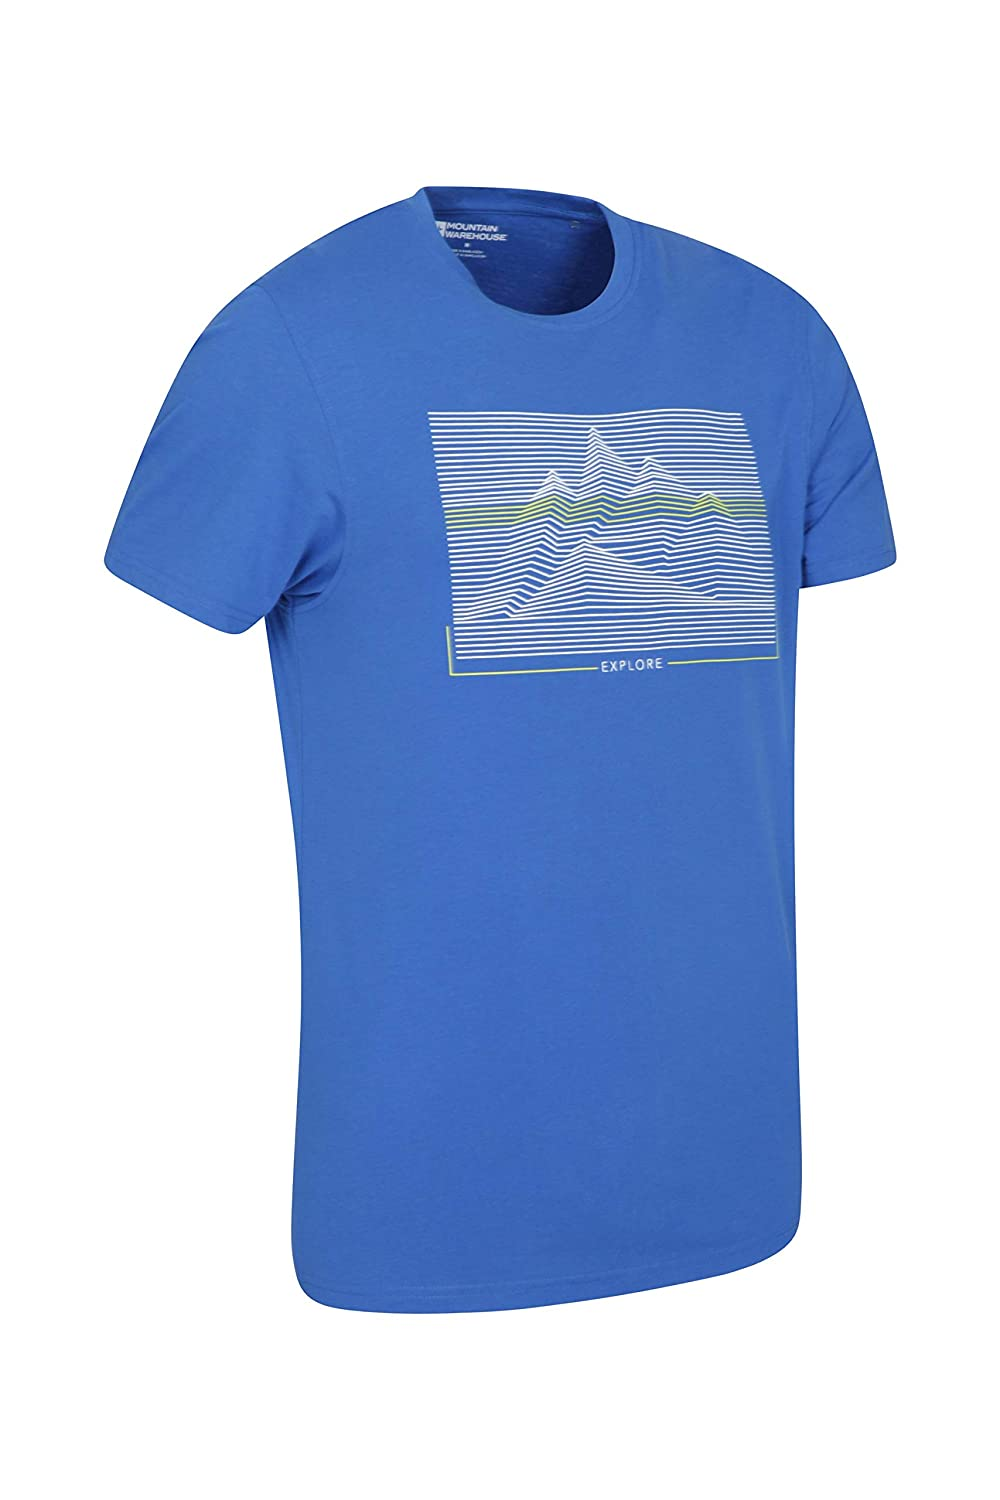 Mountain Warehouse Linear Mountain Mens Tee Quick Wick Easy to Pack Top for Spring Travelling /& Gym Breathable Summer Tshirt Quick Drying Undershirt Lightweight